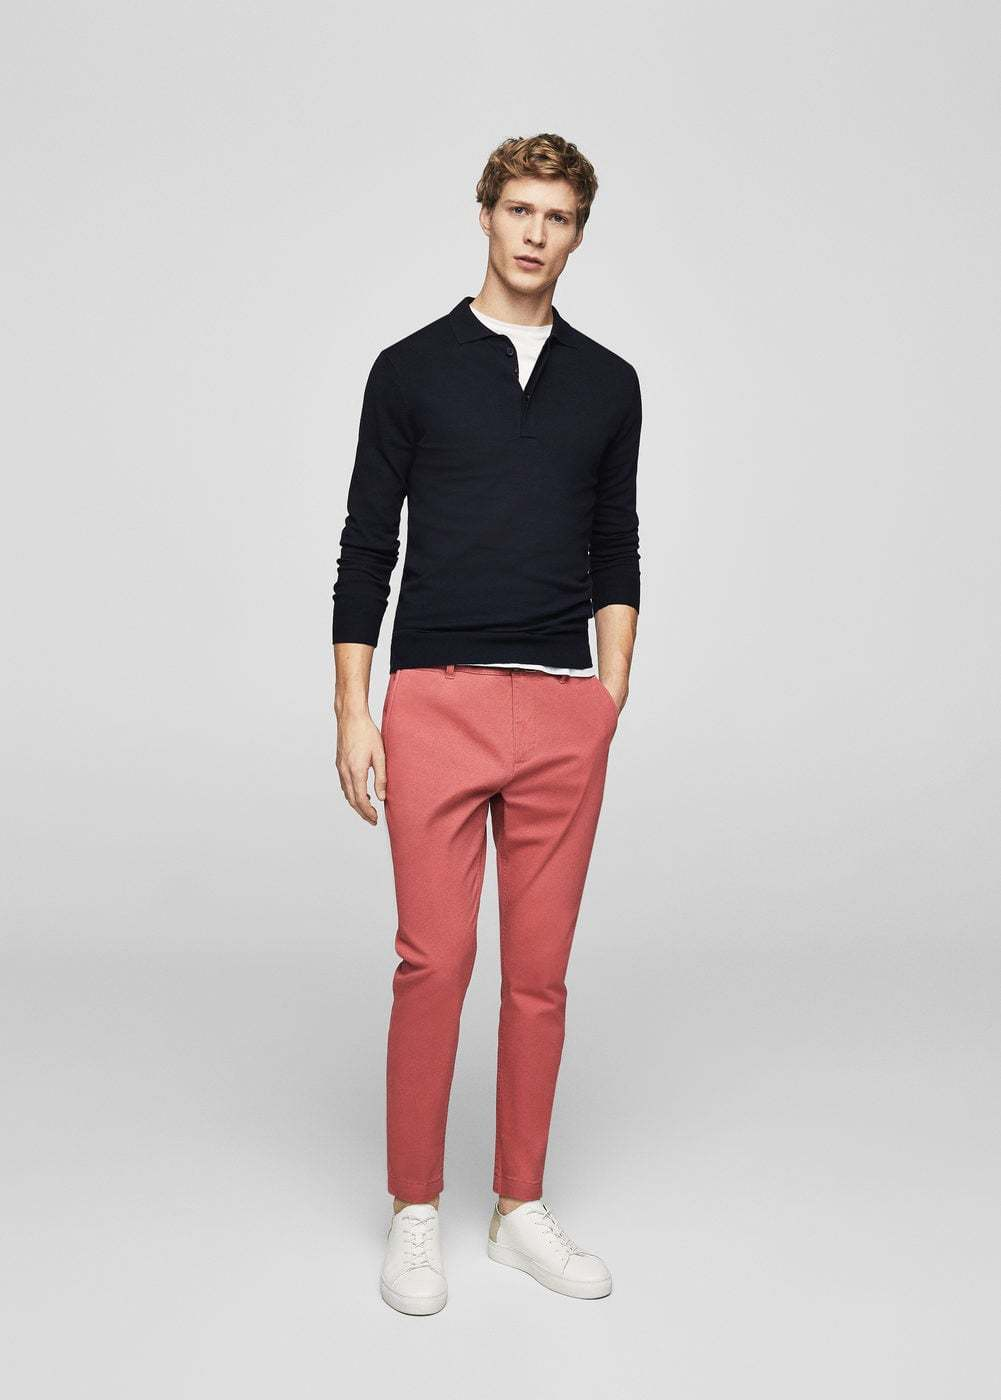 Mens Black Polo Neck Sweater White Crew Neck T Shirt Pink Chinos